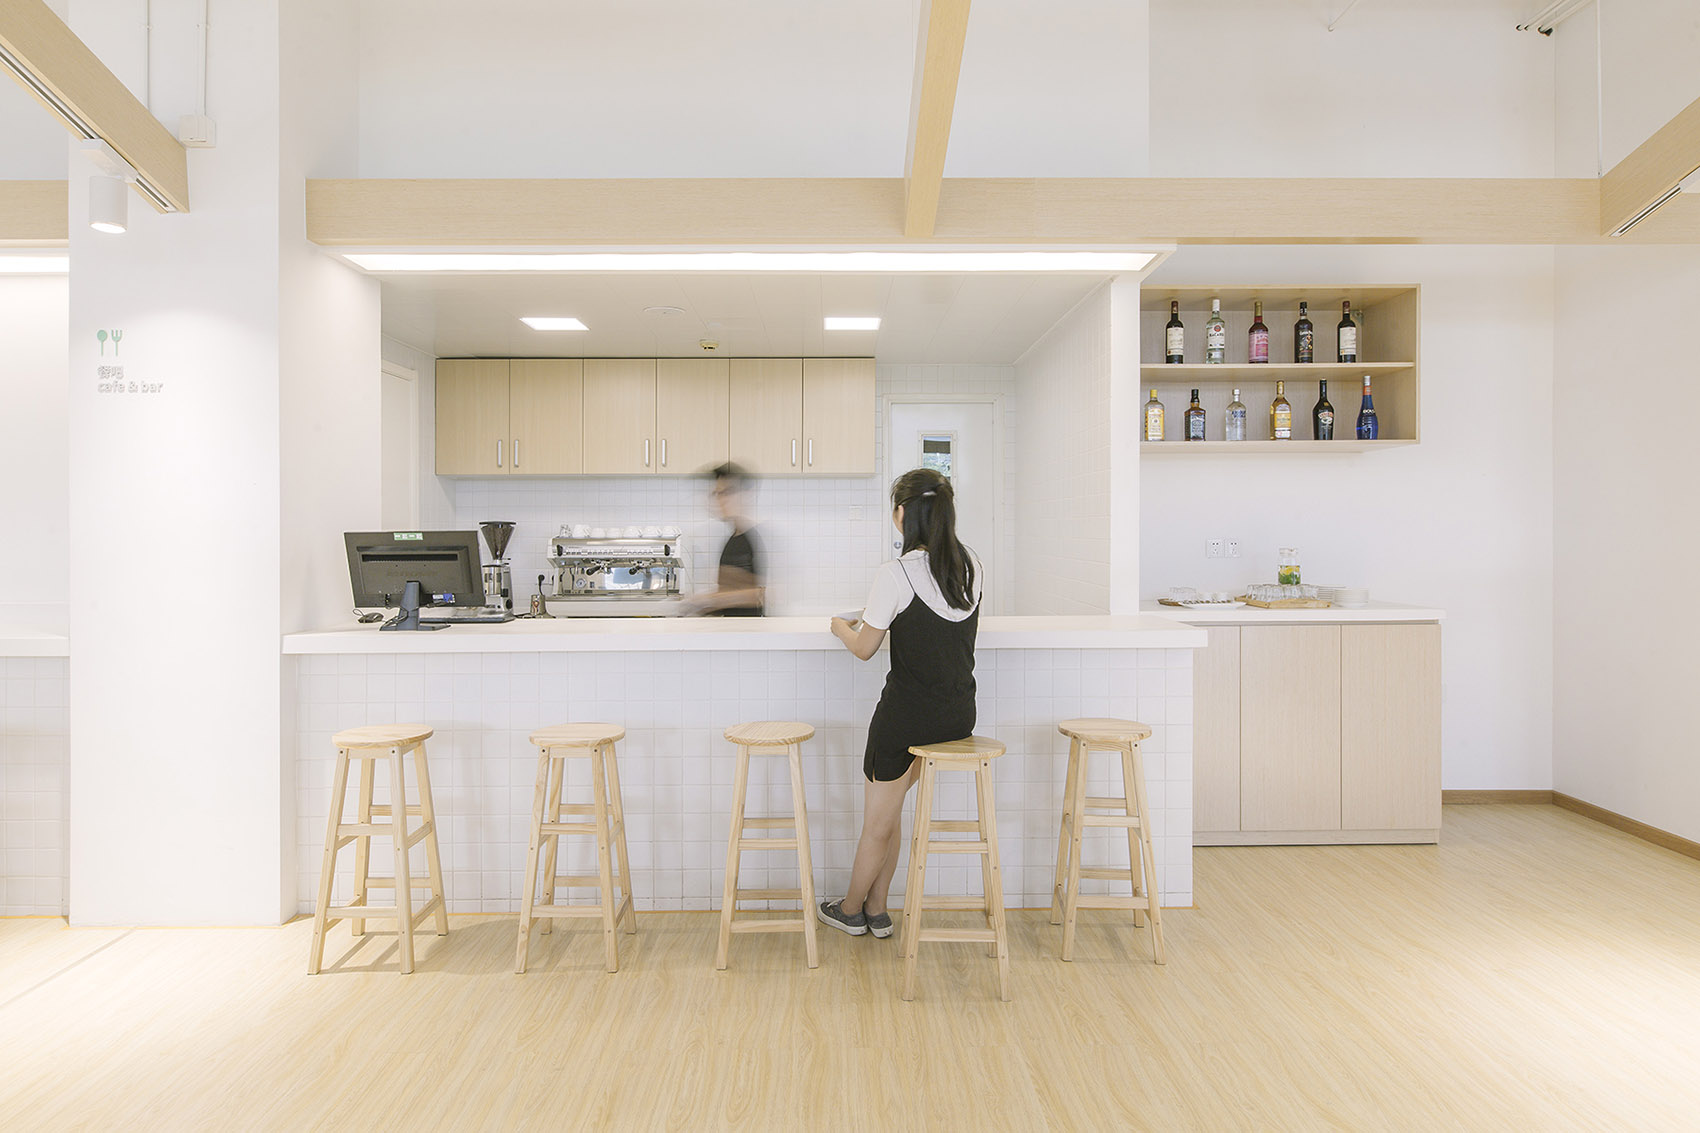 7-Together-Hostel-indoor-camping-space-for-youth-By-Jacobsen-Arquitetura